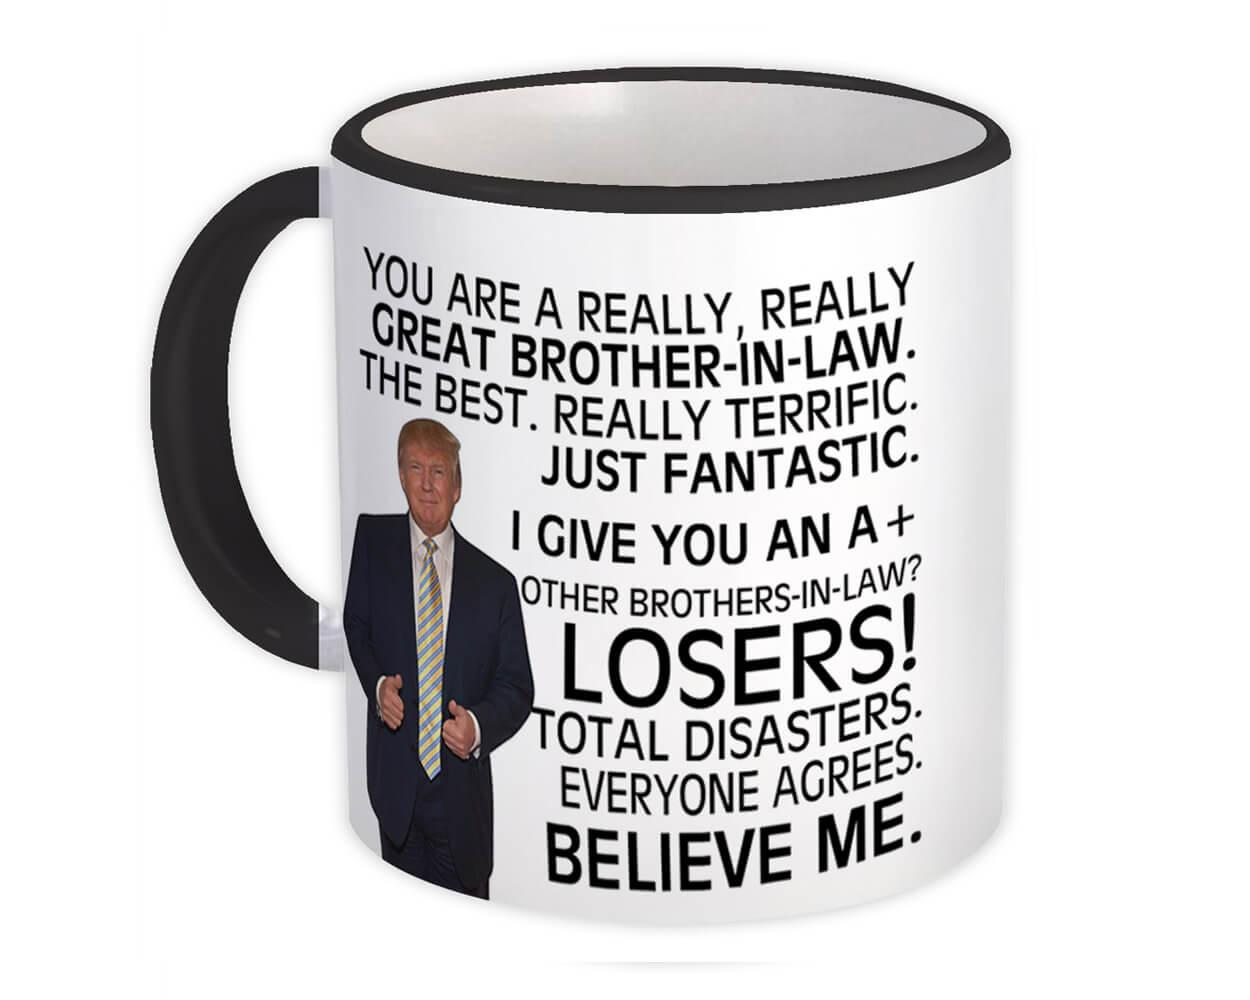 Gift for BROTHER-IN-LAW : Gift Mug Donald Trump Great BROTHER-IN-LAW Funny